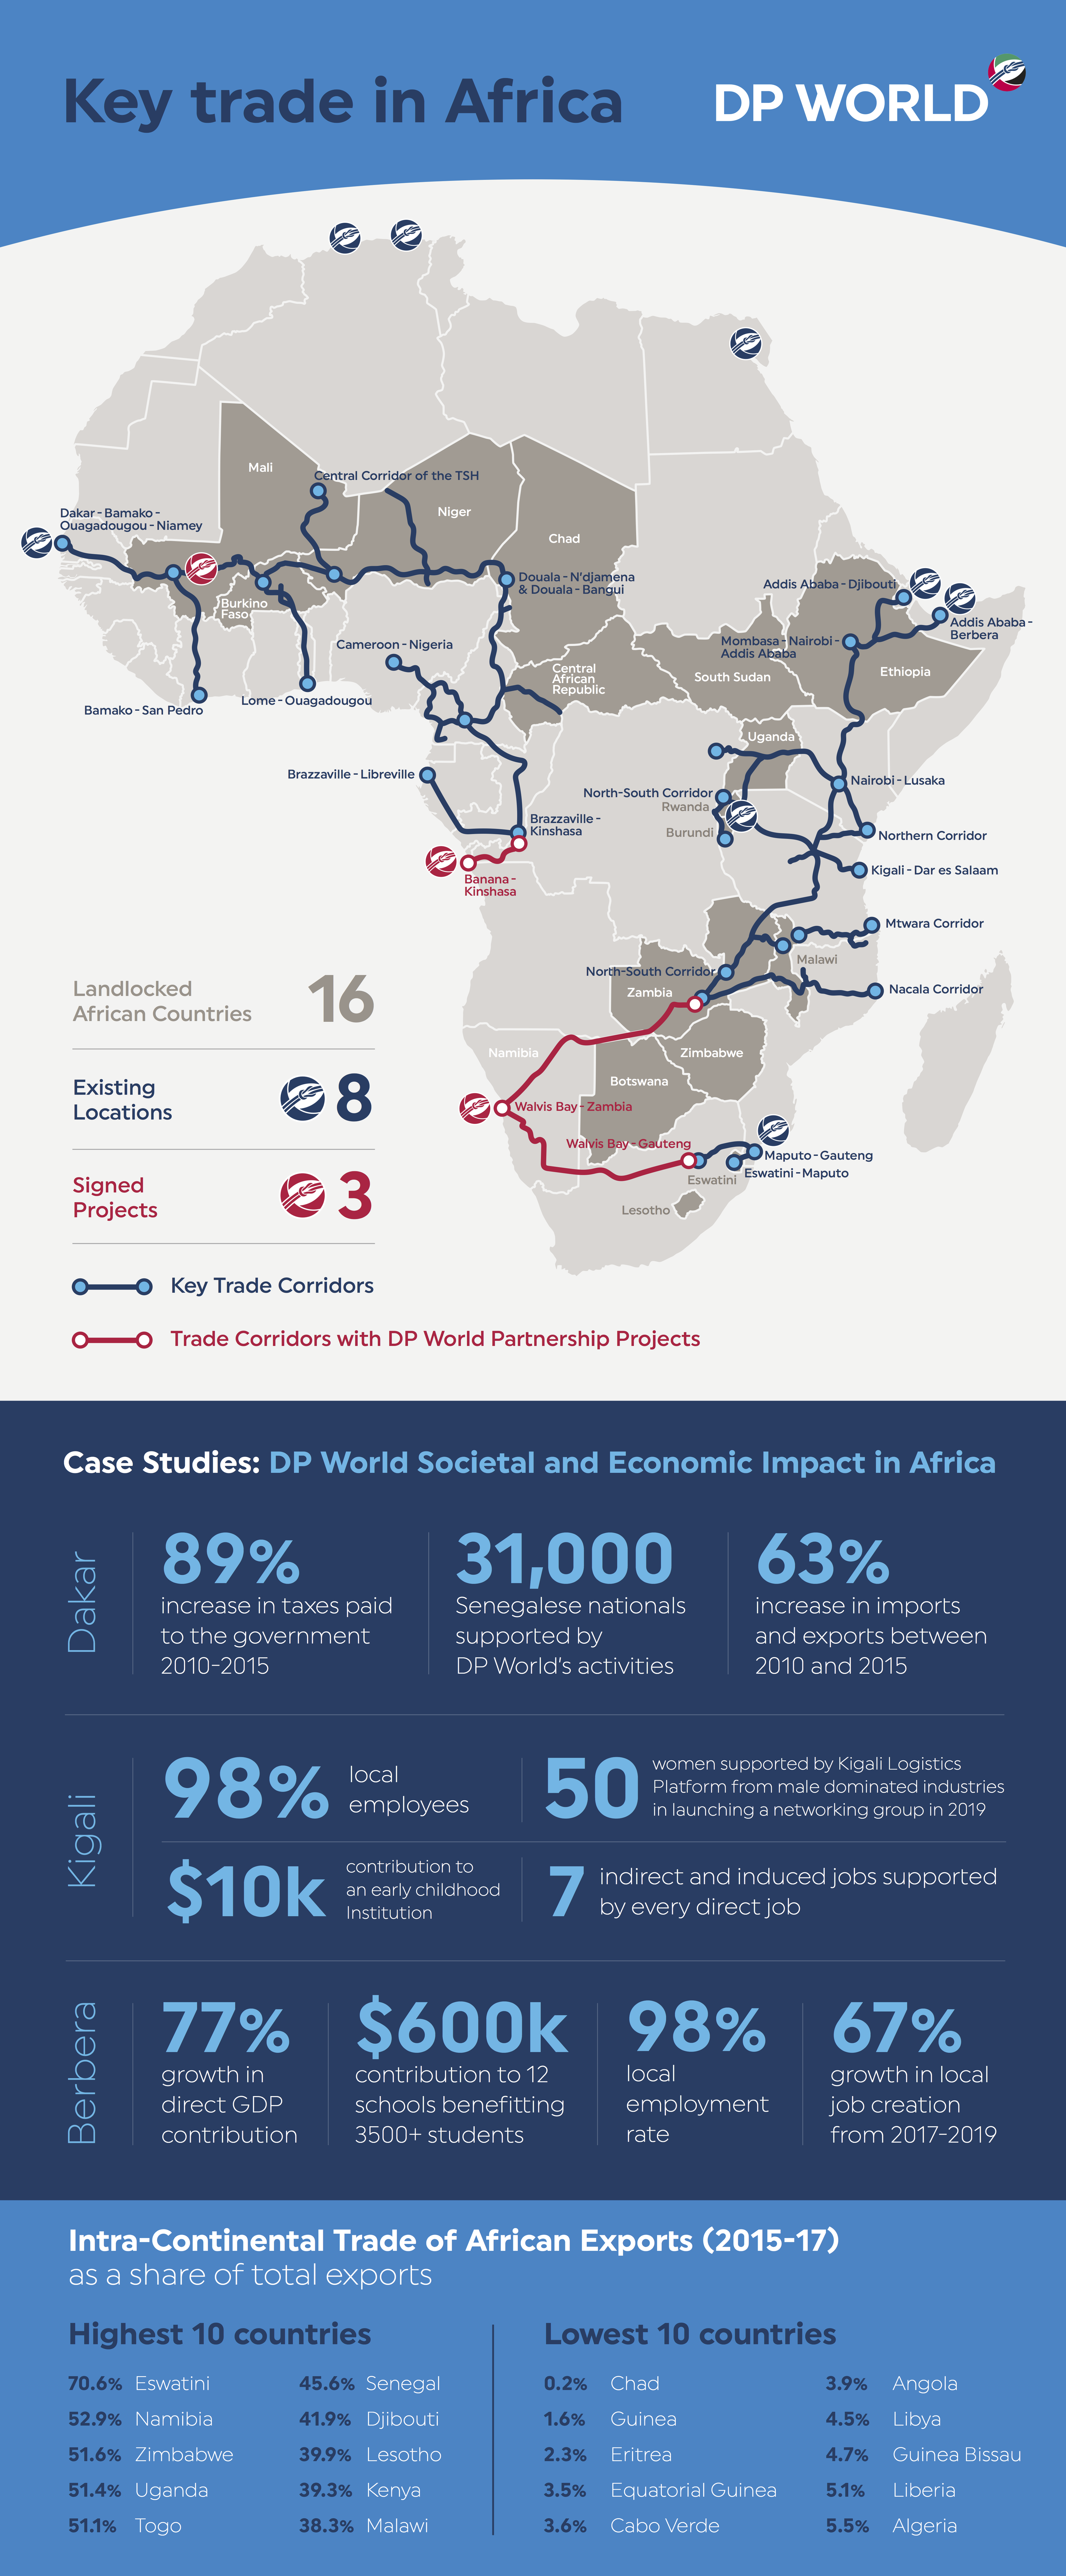 Key Trade in Africa map